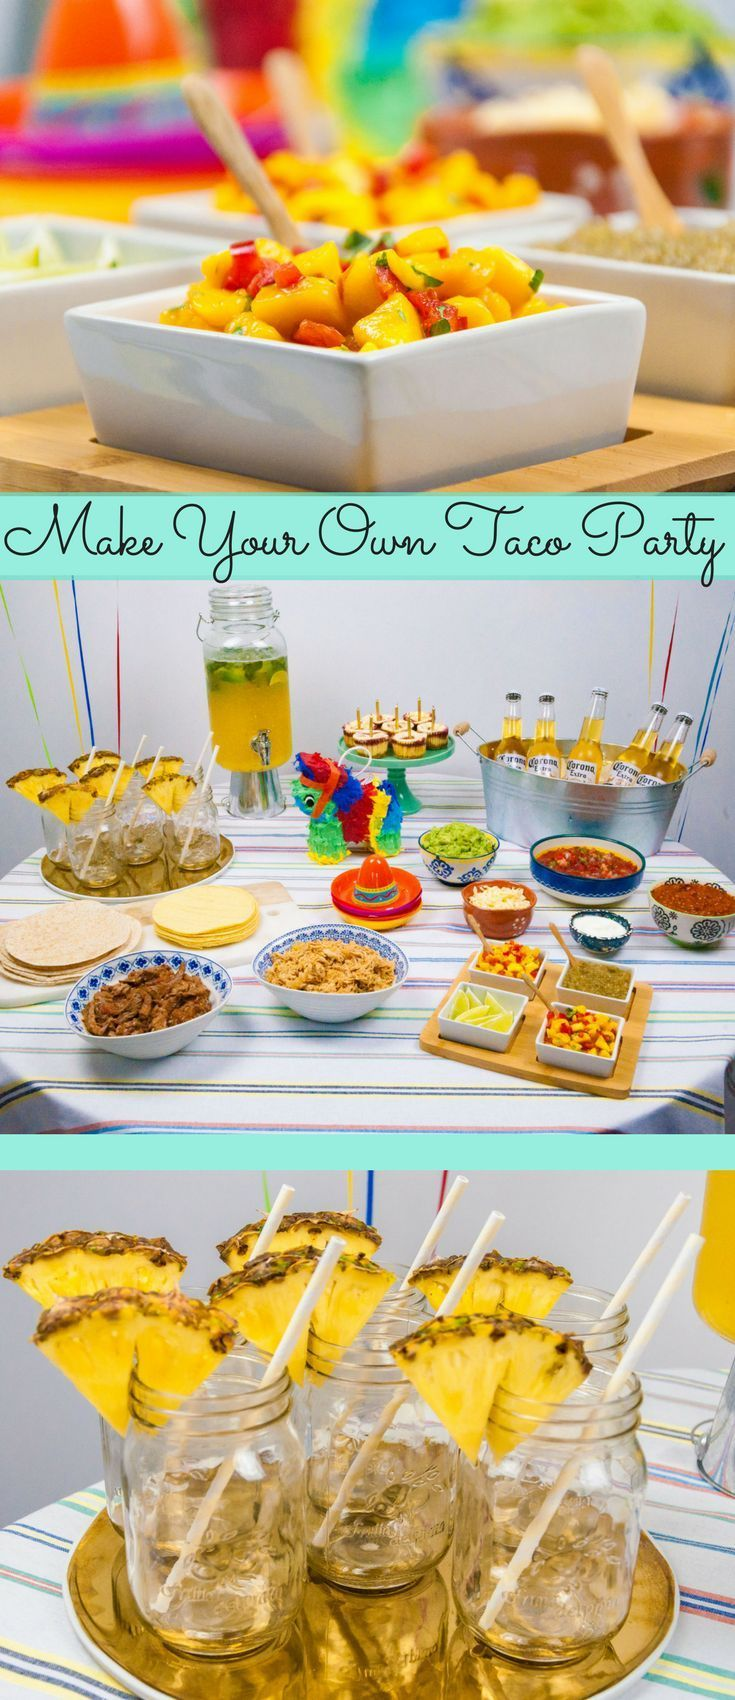 Make Your Own Taco Party Taco Dinner Party Taco Party Mexican Dinner Party